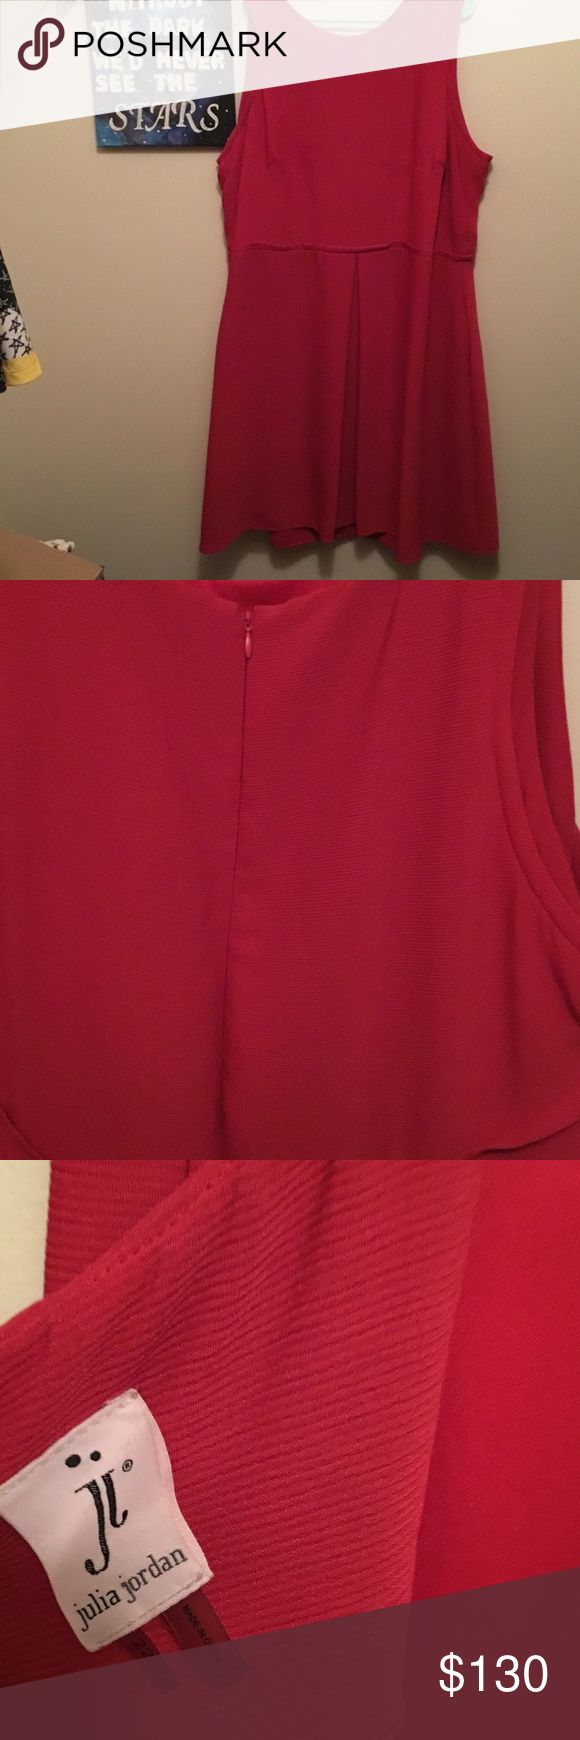 Julia Jordan fuchsia dress NWOT! Perfect for a wedding, homecoming, or a girls night out Julia Jordan Dresses Midi